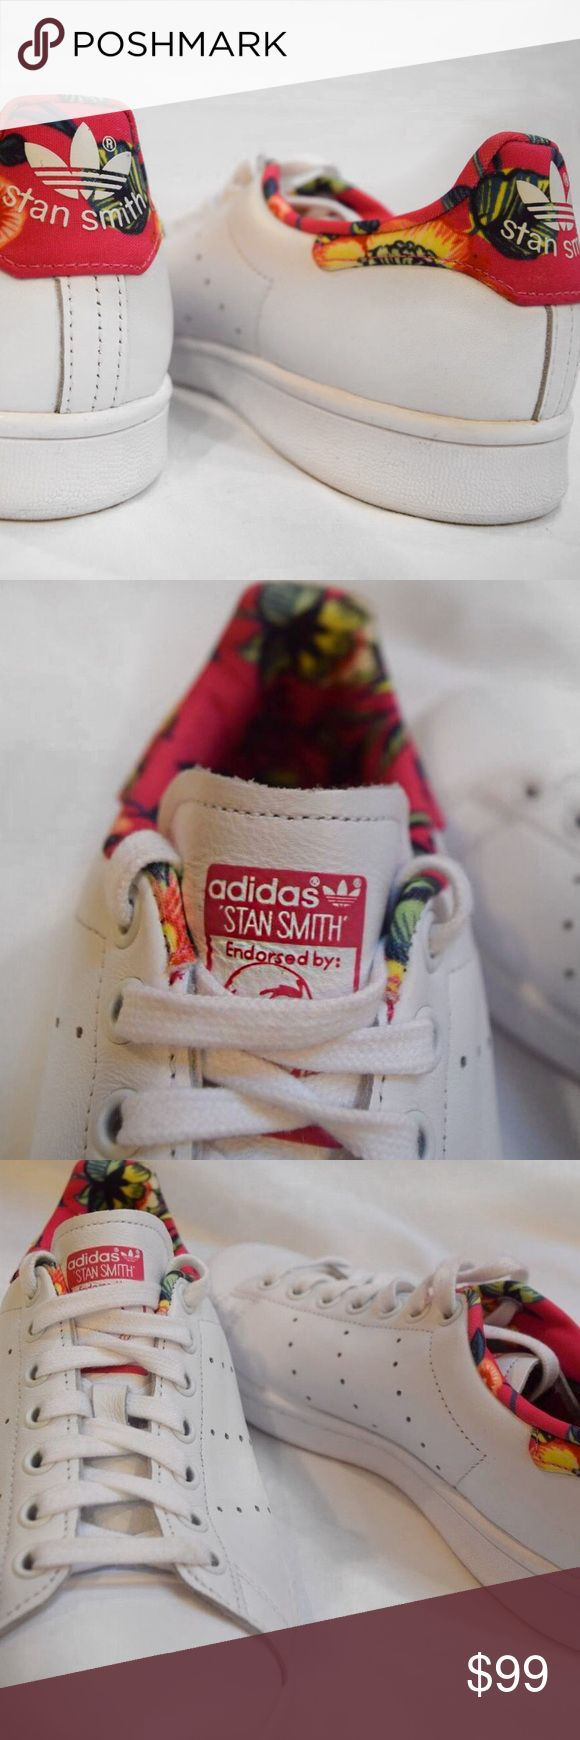 LIMITED EDITION floral Stan smiths Rare limited edition never worn Stan smith floral adidas originals Adidas Shoes Sneakers